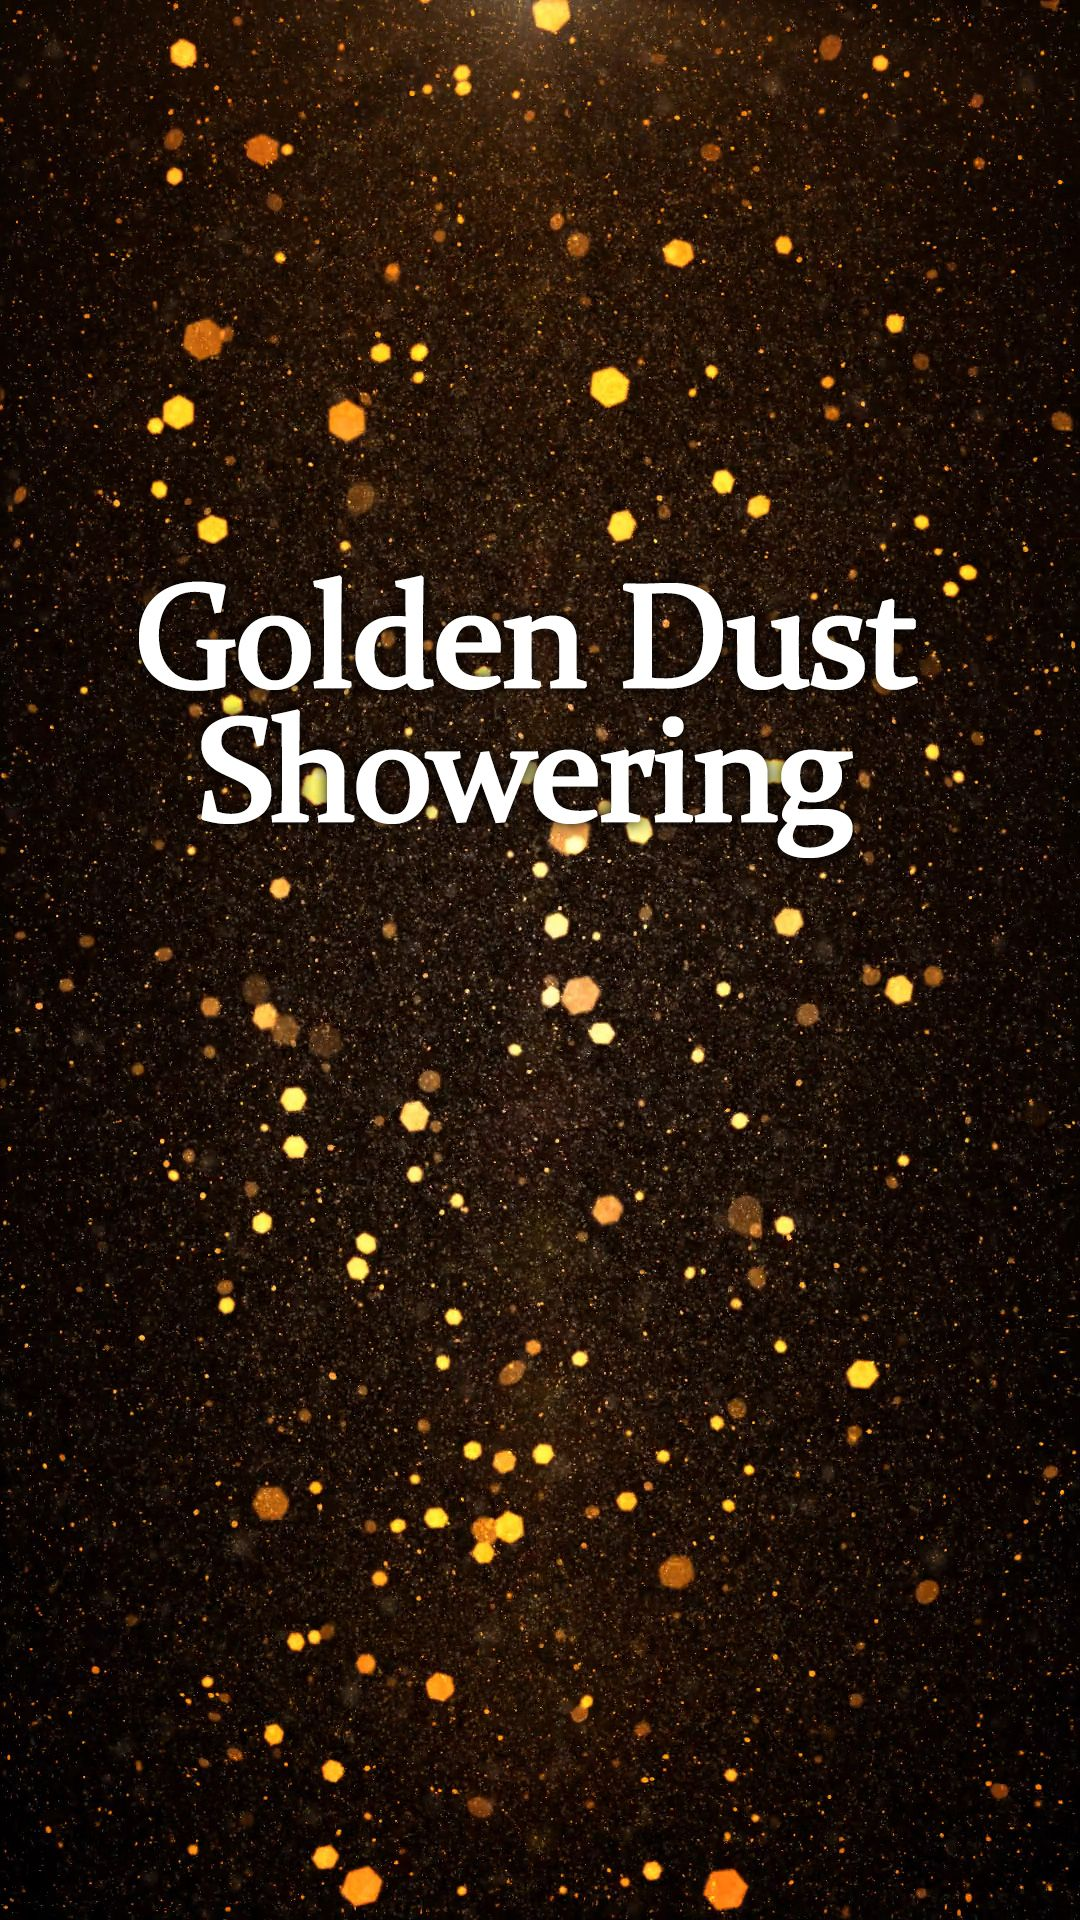 Golden dust showering video From Royalty Free Fooatges